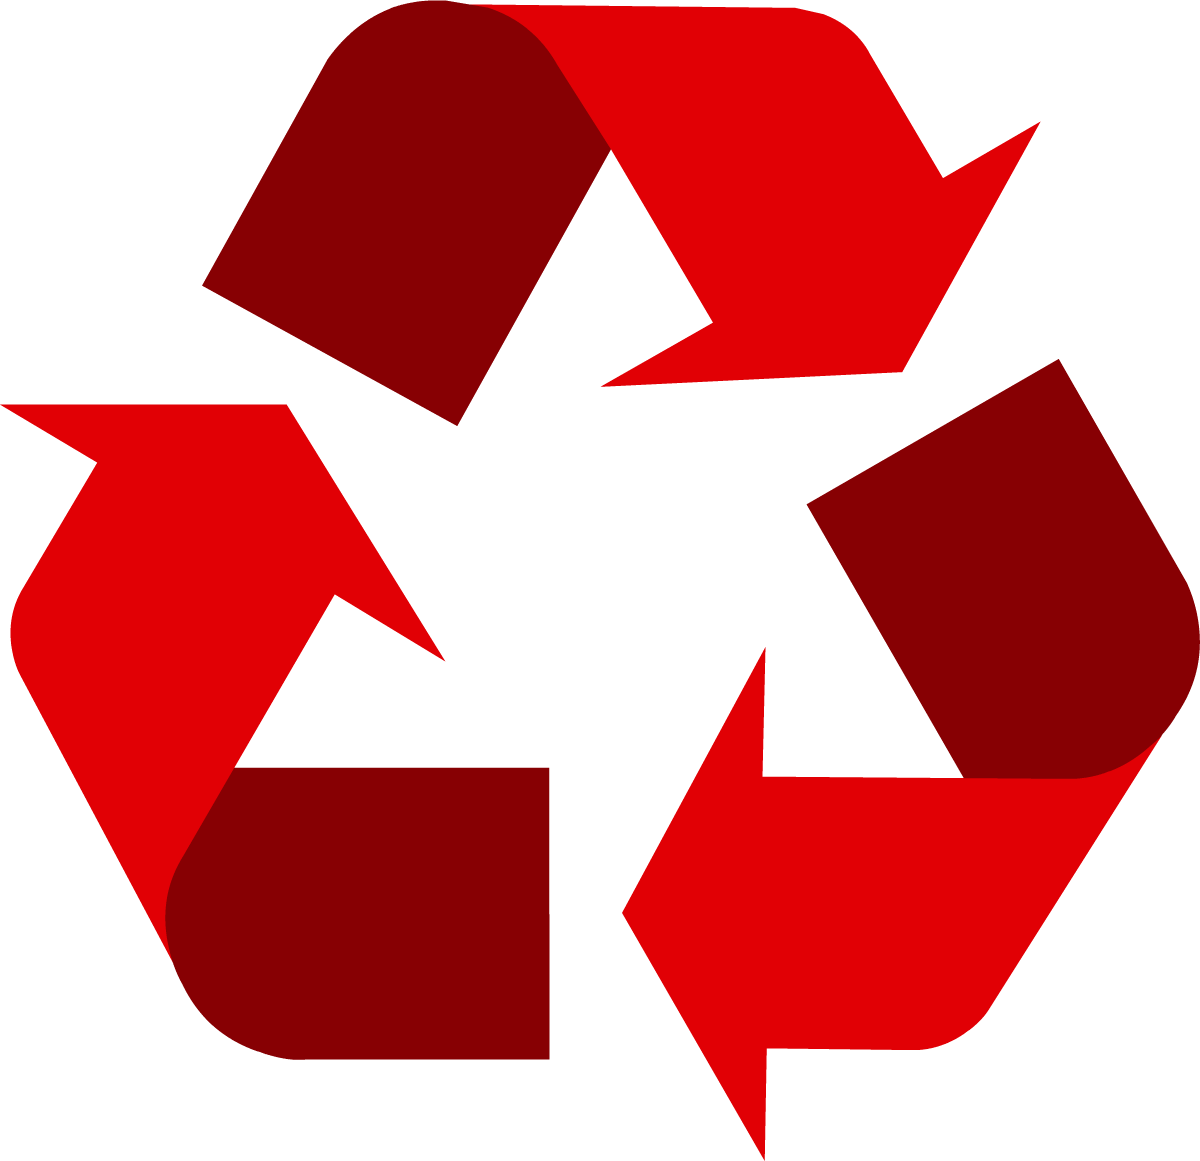 Newspaper clipart recycled paper. Recycle icon logo png